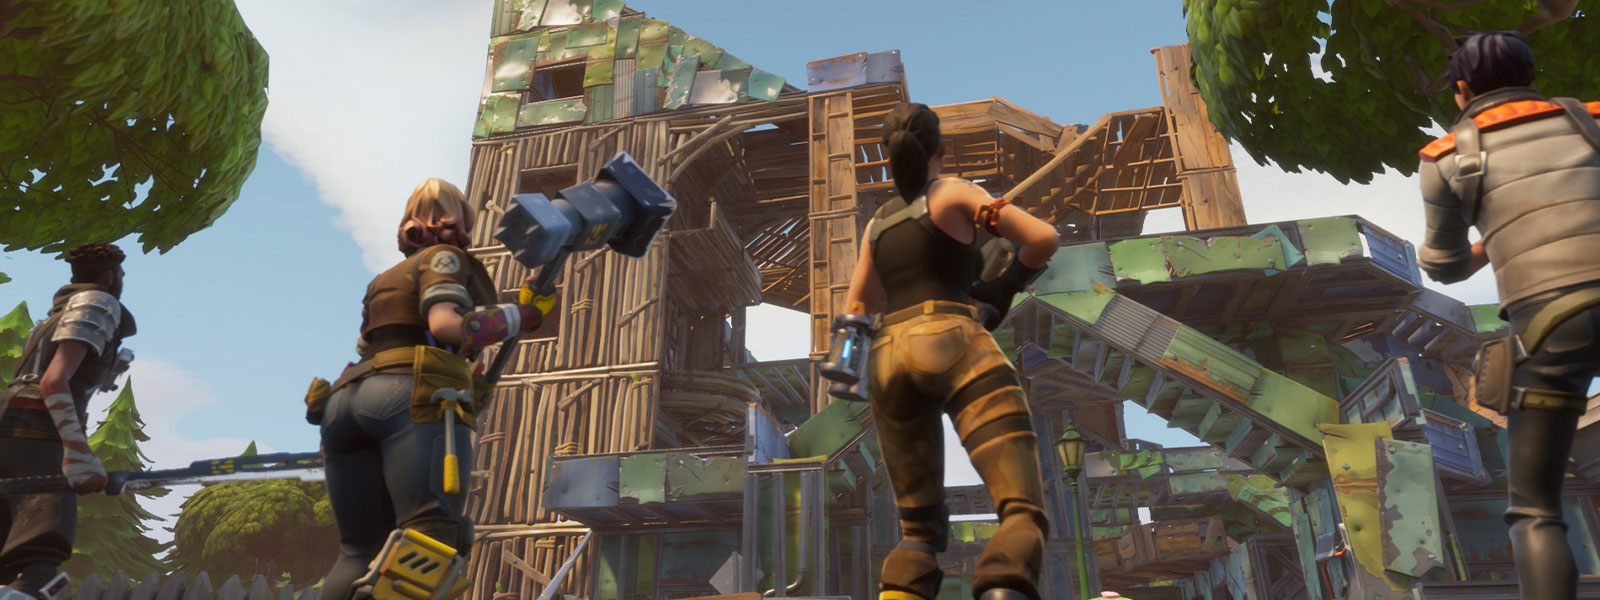 4 personnages Fortnite construisant un fort